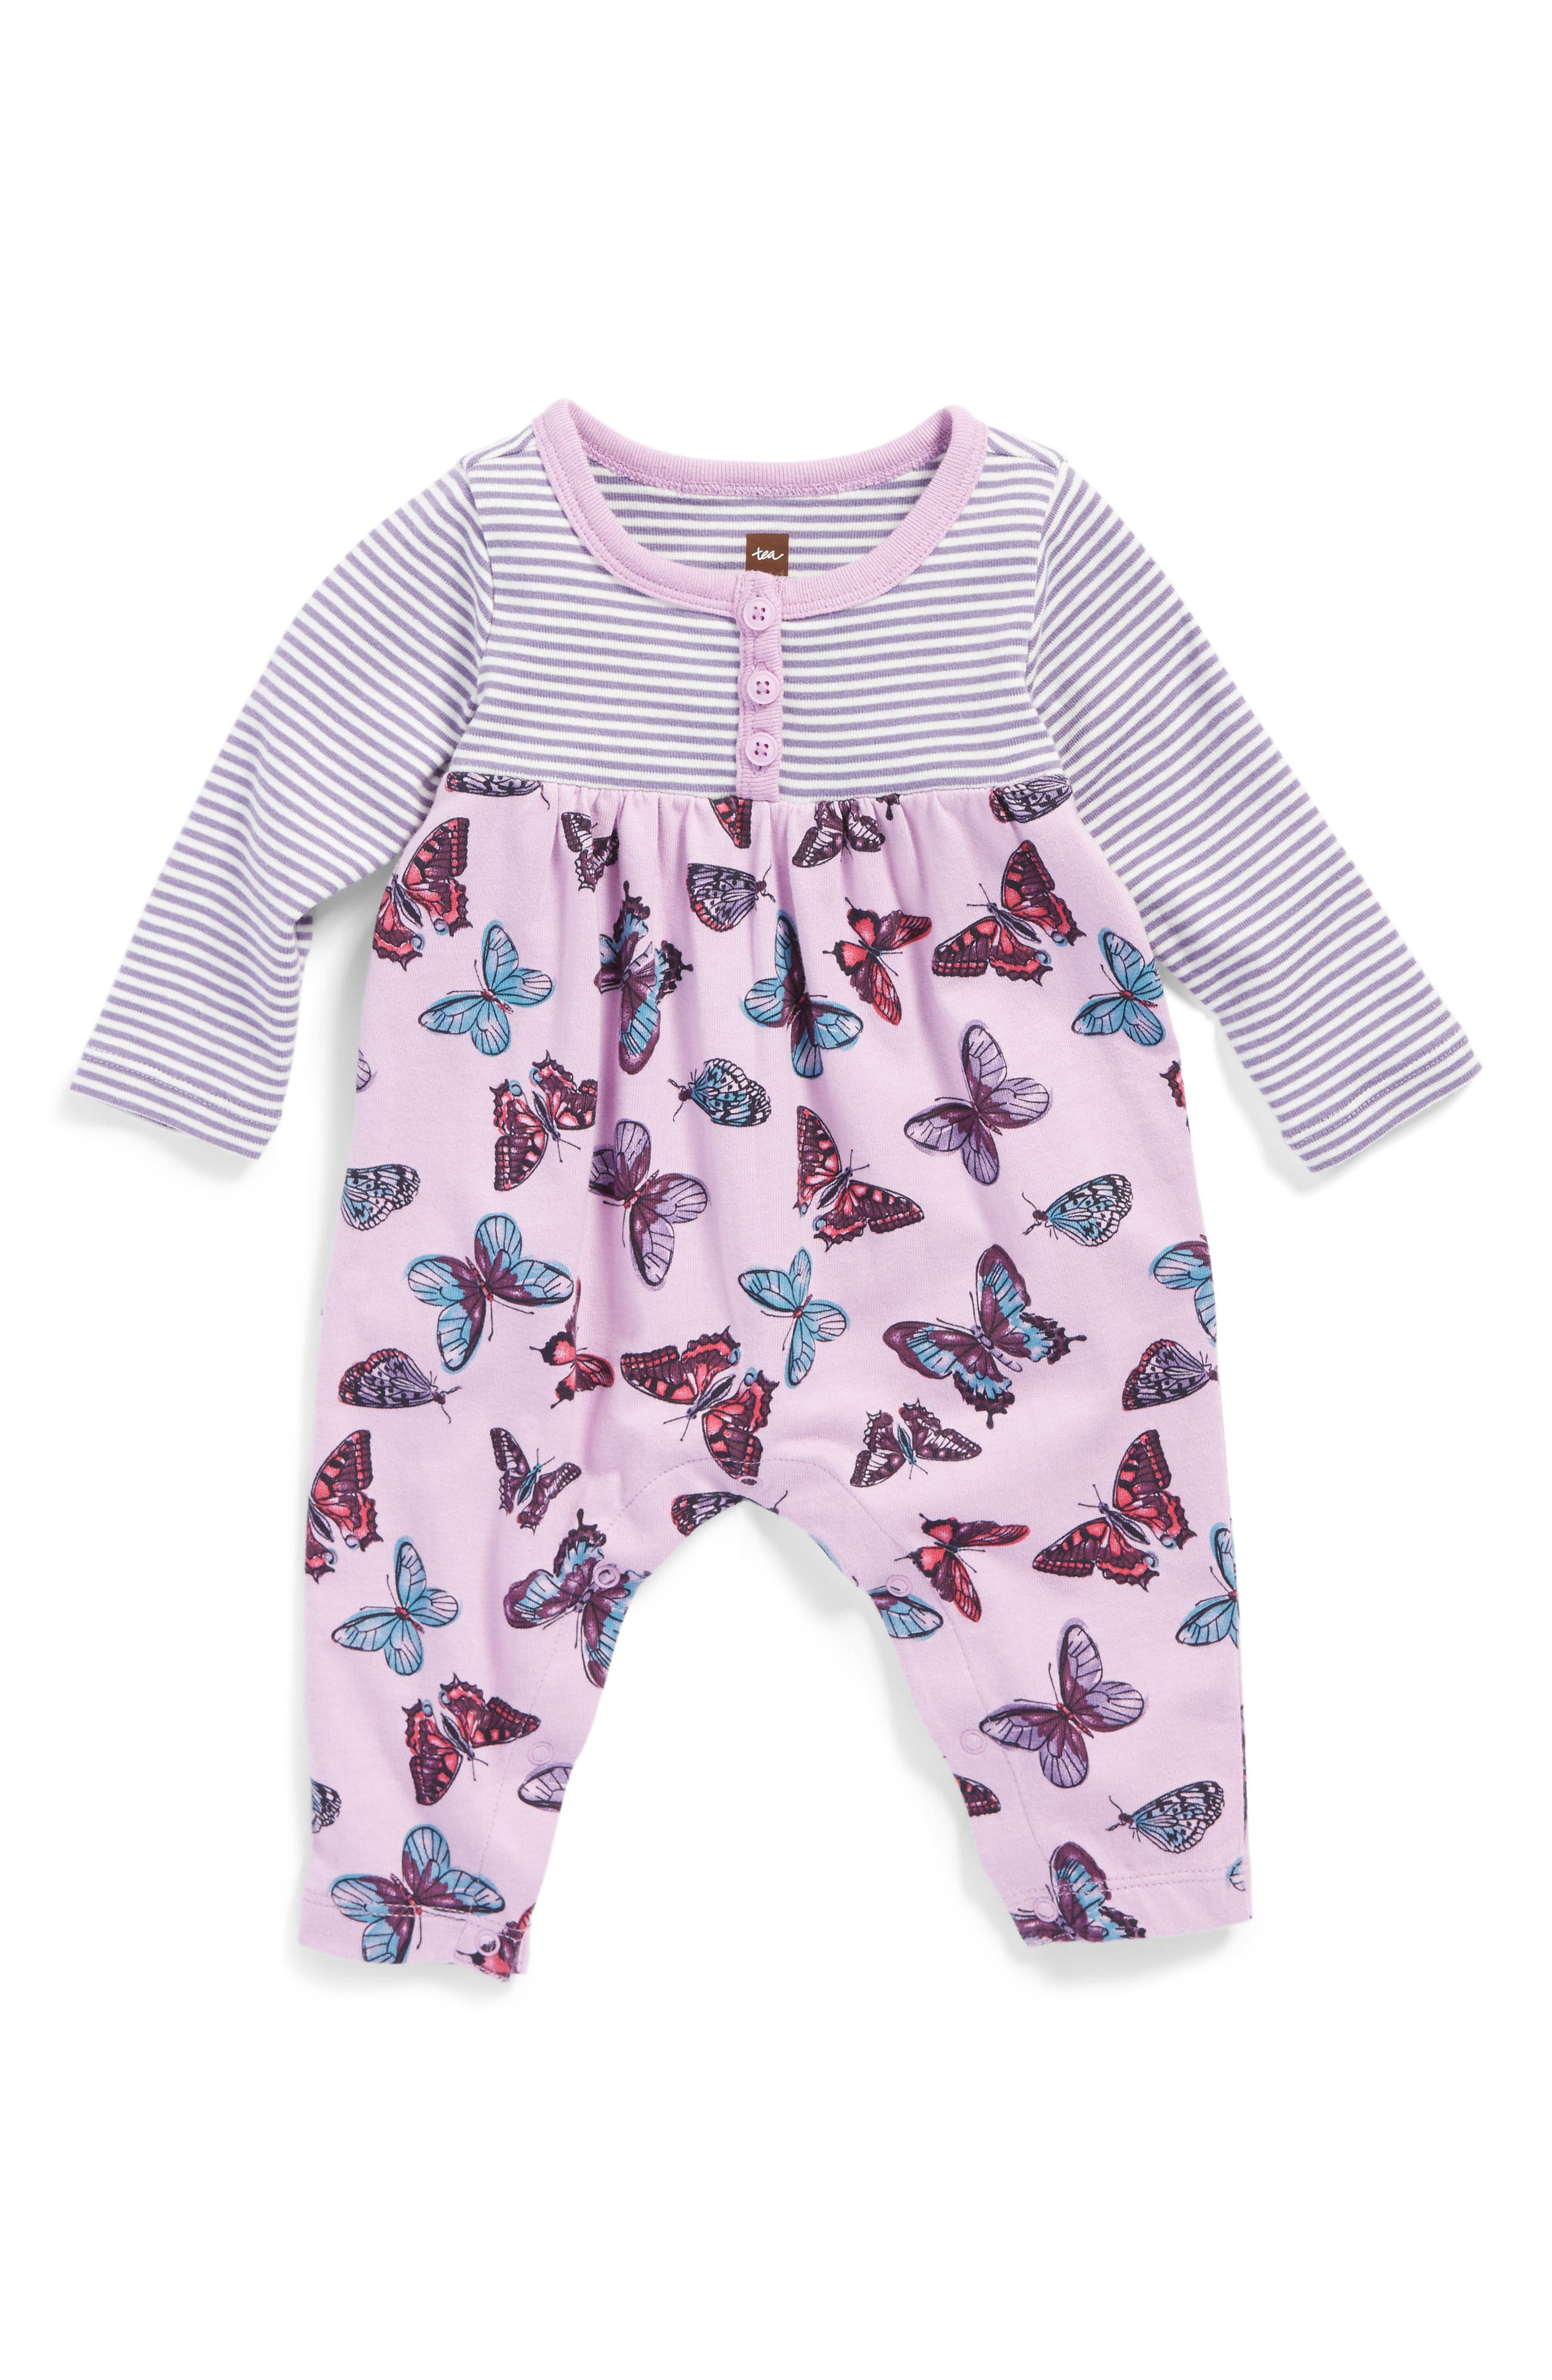 Main Image - Tea Collection Sorcha Henley Romper (Baby Girls)